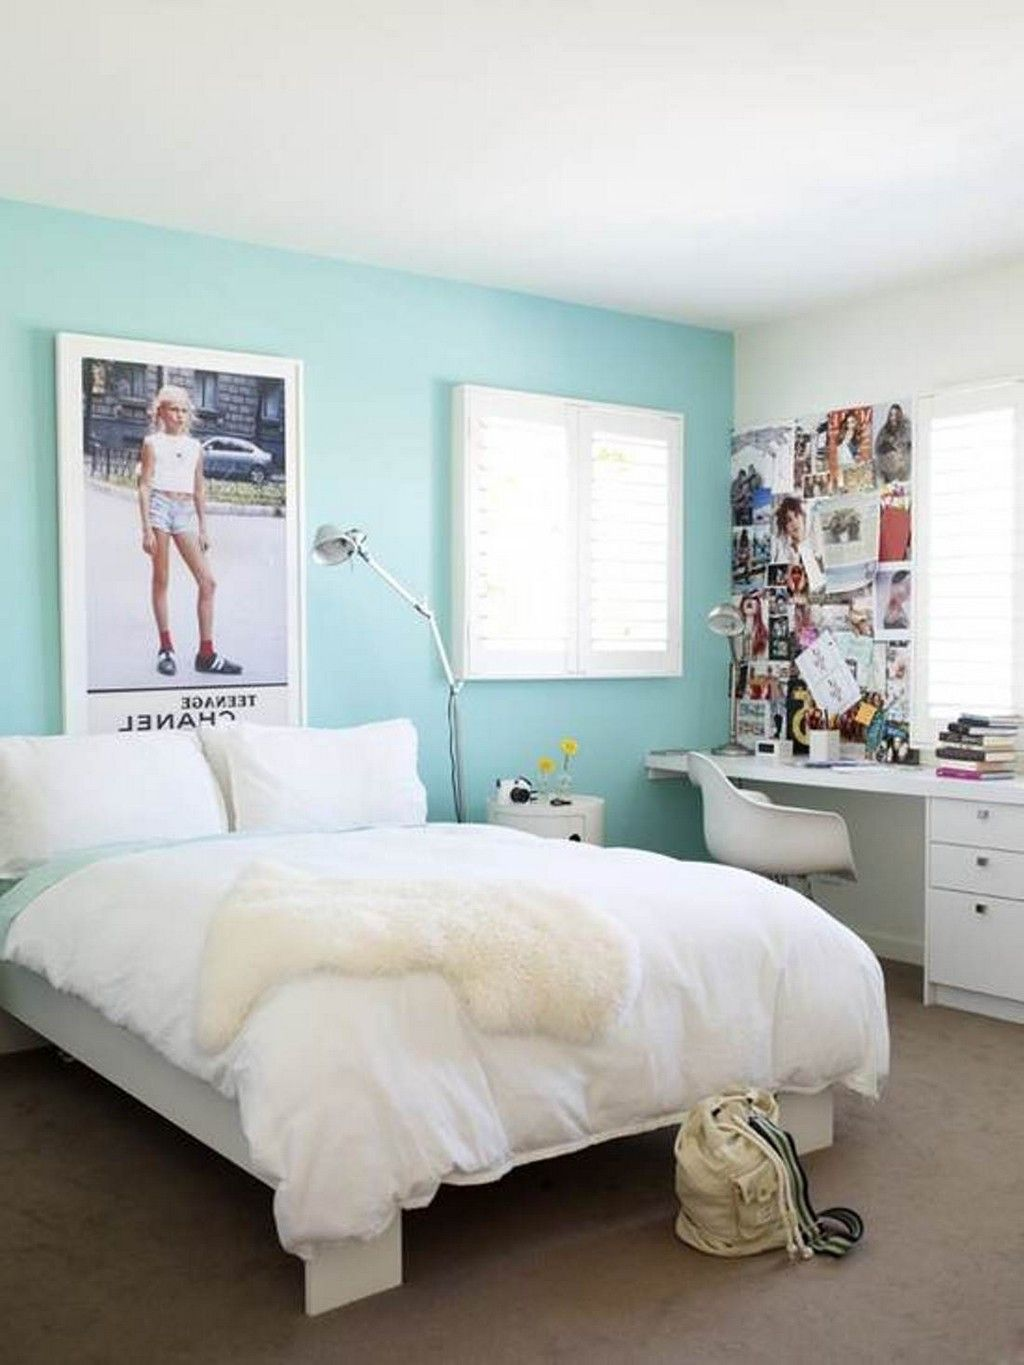 Paint Color Combinations For Small Living Rooms Bedroom Calming Blue Paint Colors For Small Teen Bedroom Ideas